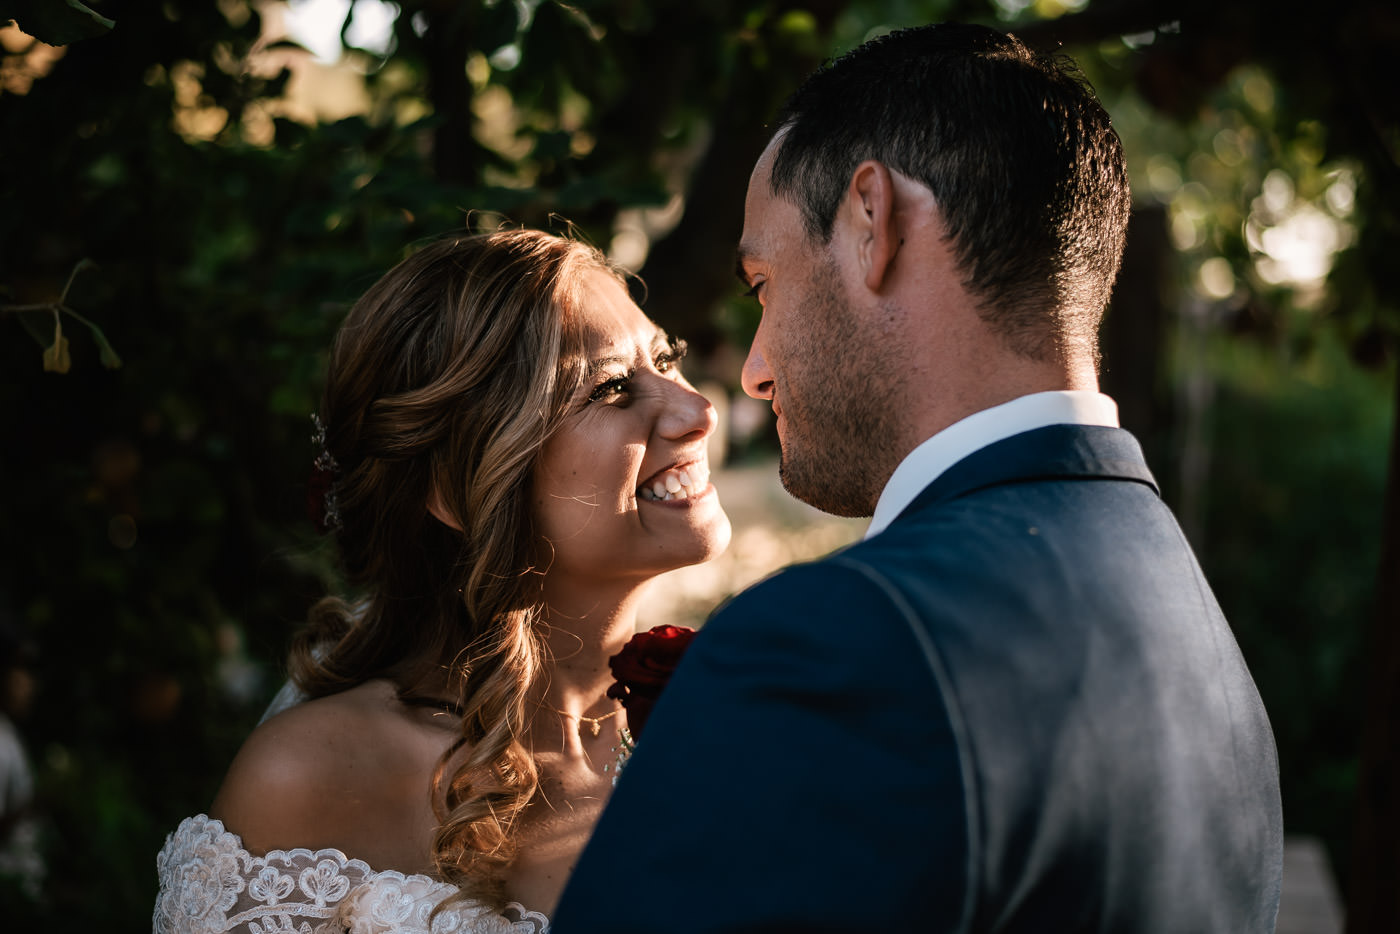 This happy couple is nothing but smiles after their charming ceremony at The Homestead.